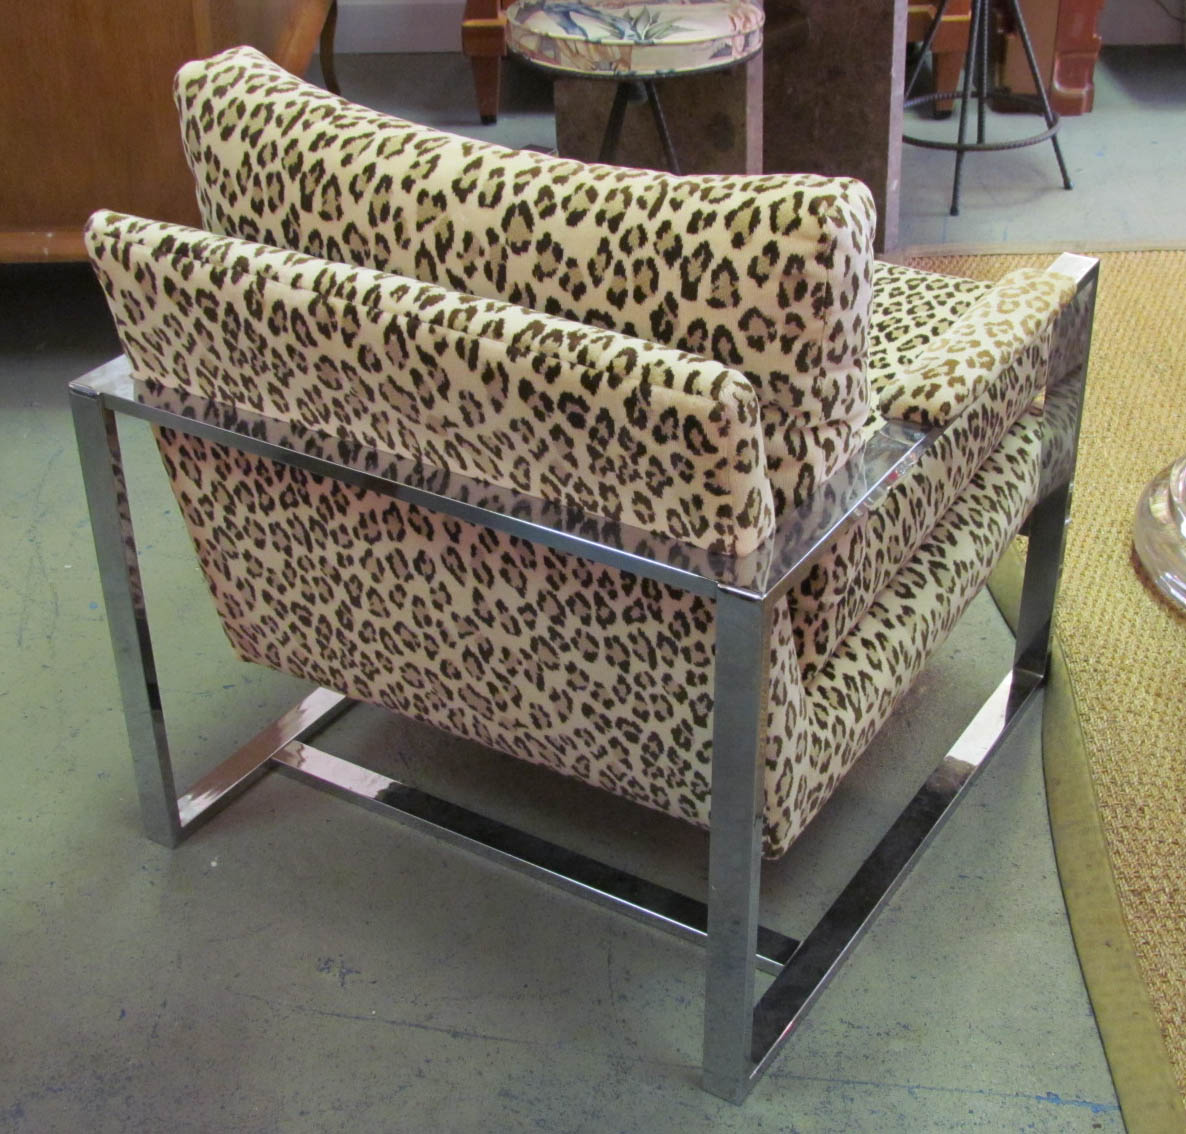 teal trends discount loungewear shocking living room pics fixed and animal lounge awesome dining of chaise leopard for style elegant print rooms chair